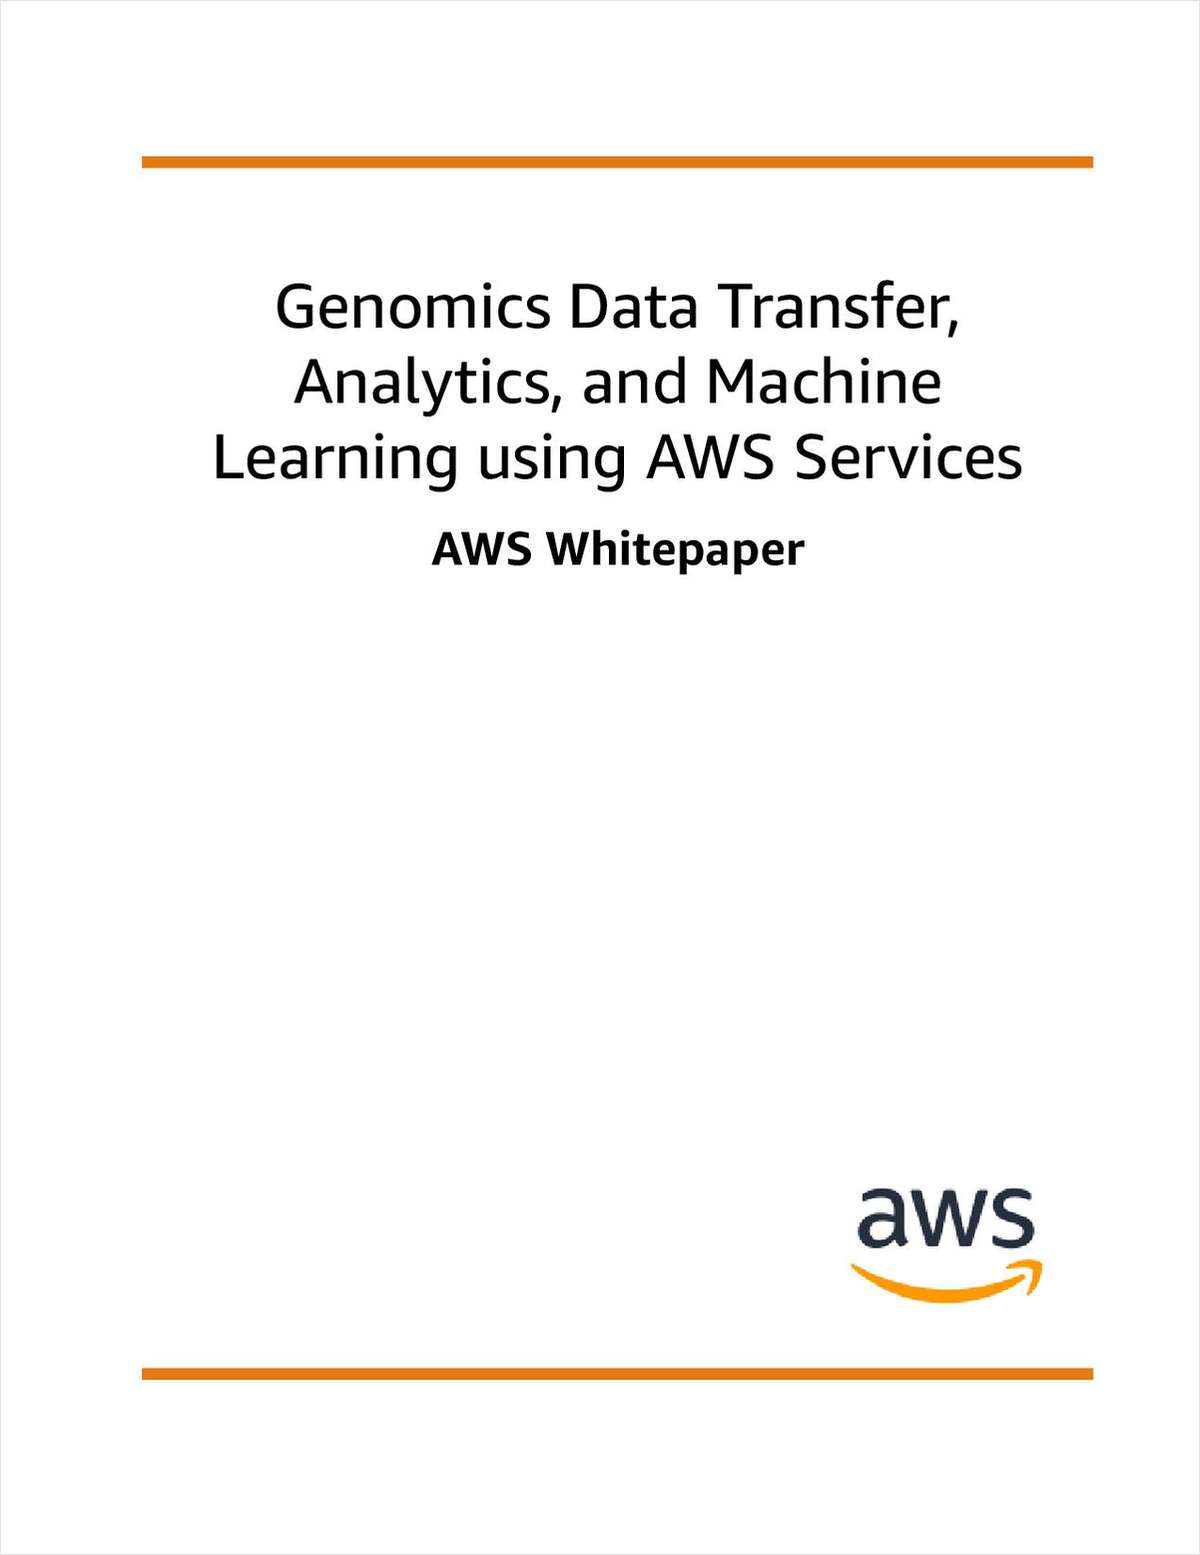 Genomics Data Transfer, Analytics, and Machine Learning Using AWS Services